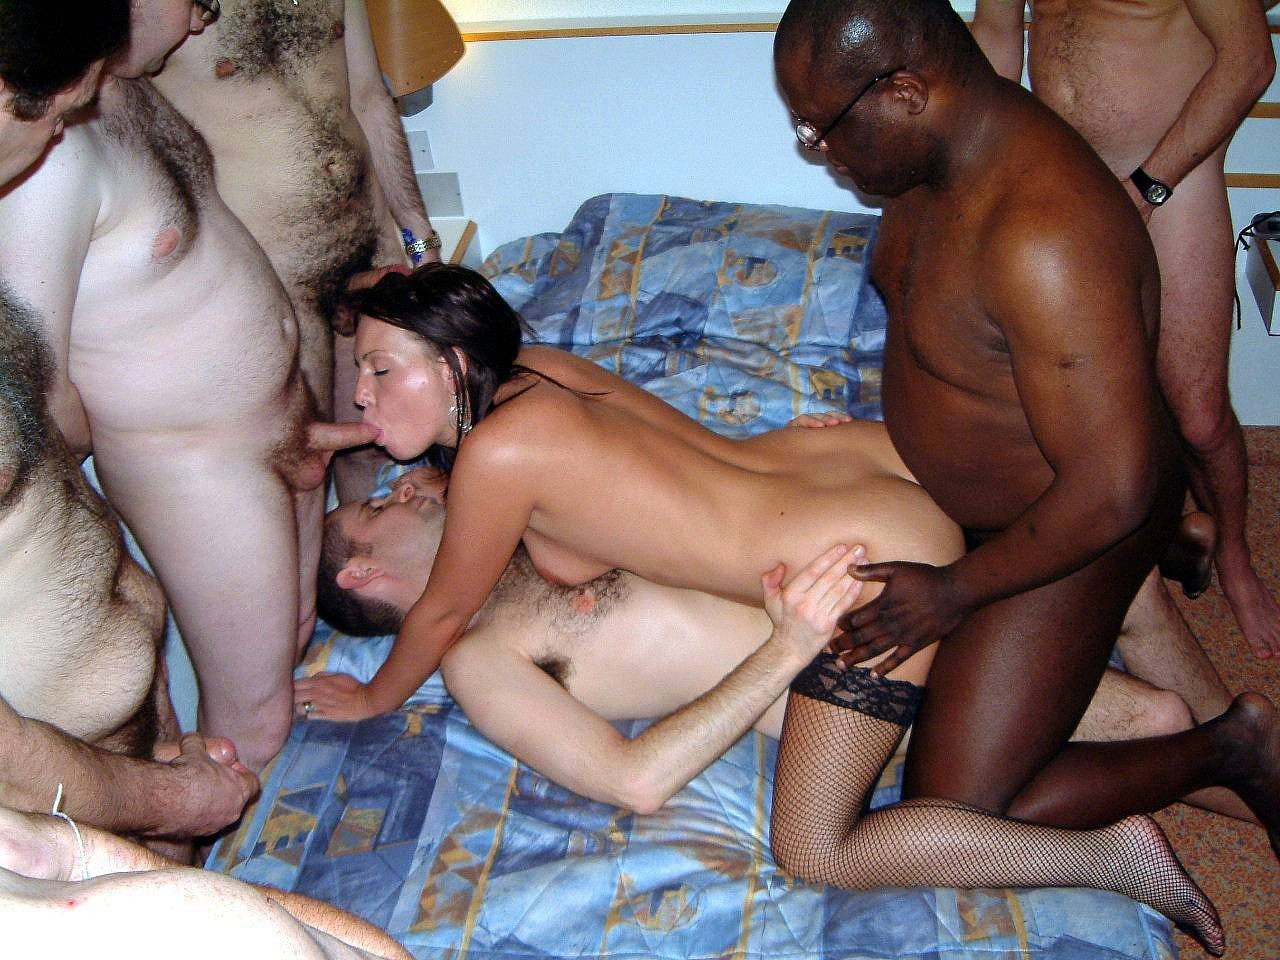 Amatuer gangbang videos